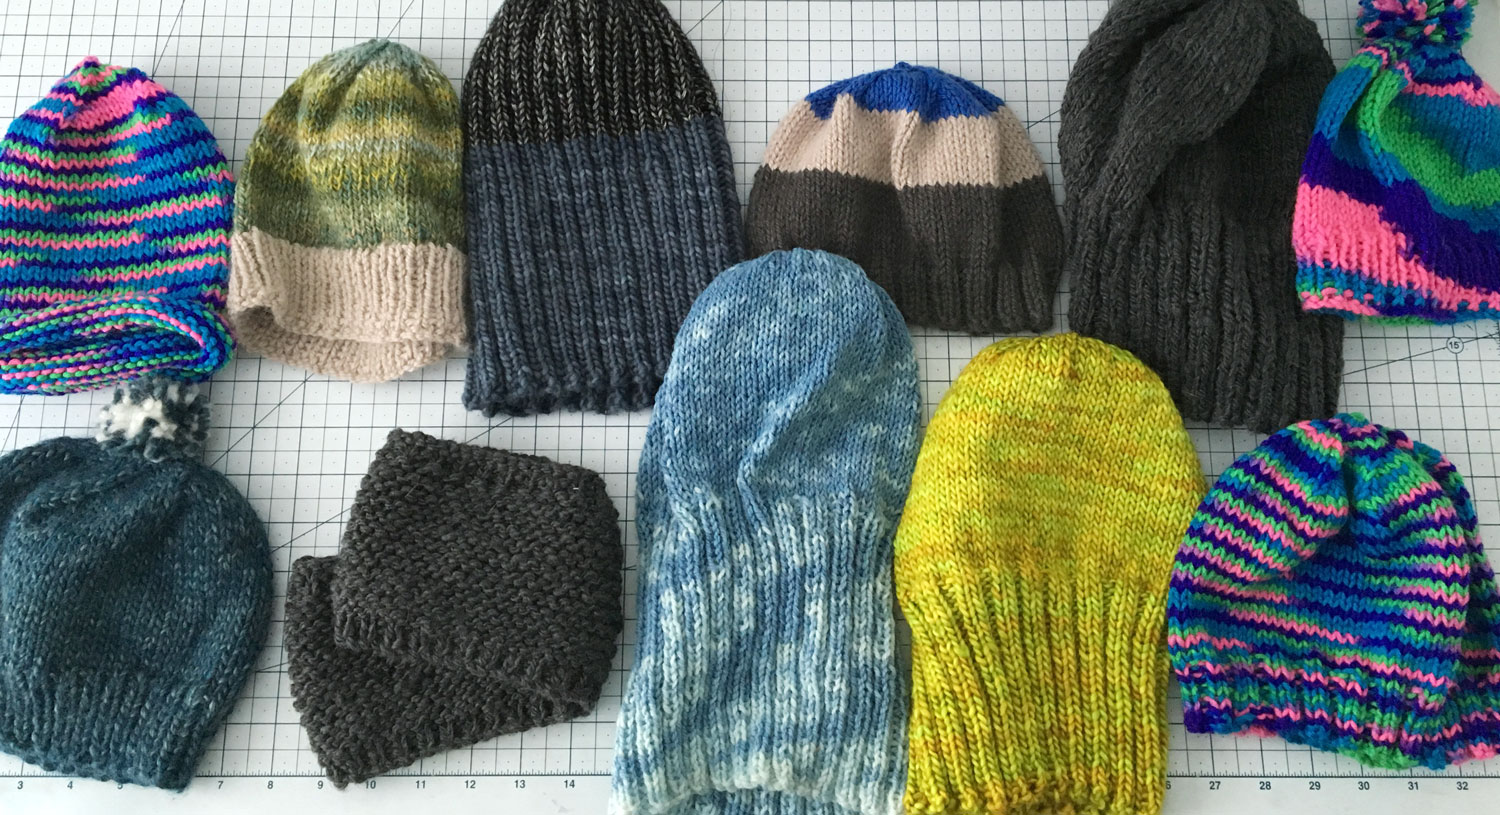 knit hats by Teresa